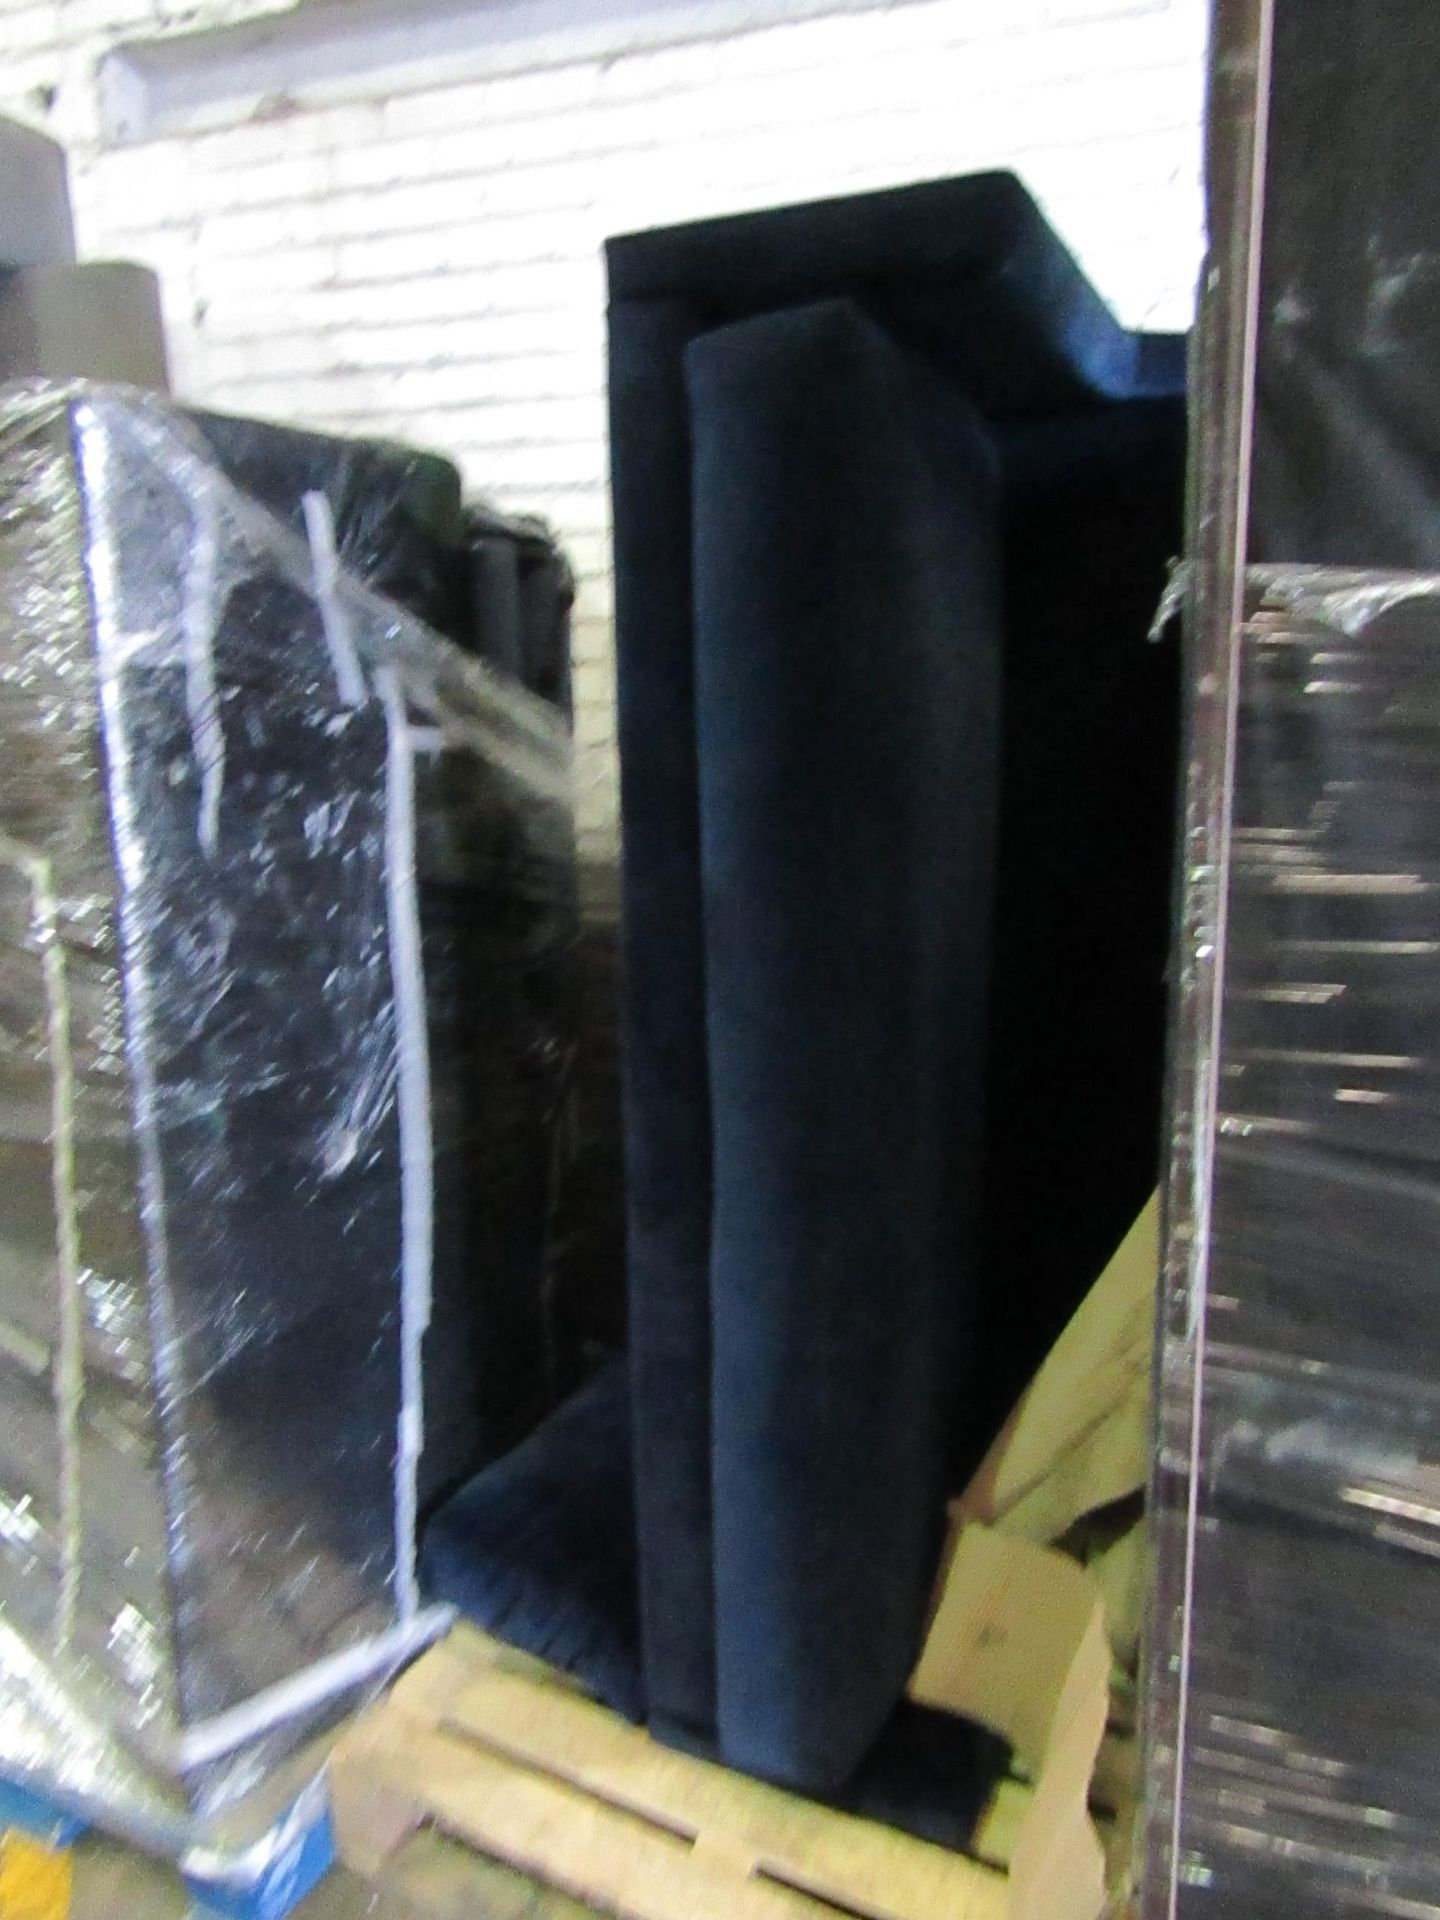 | 5X | PALLETs OF SWOON B.E.R SOFAS, UNMANIFESTED, WE HAVE NO IDEA WHAT IS ON THESE PALLETS, IF THEY - Image 2 of 5